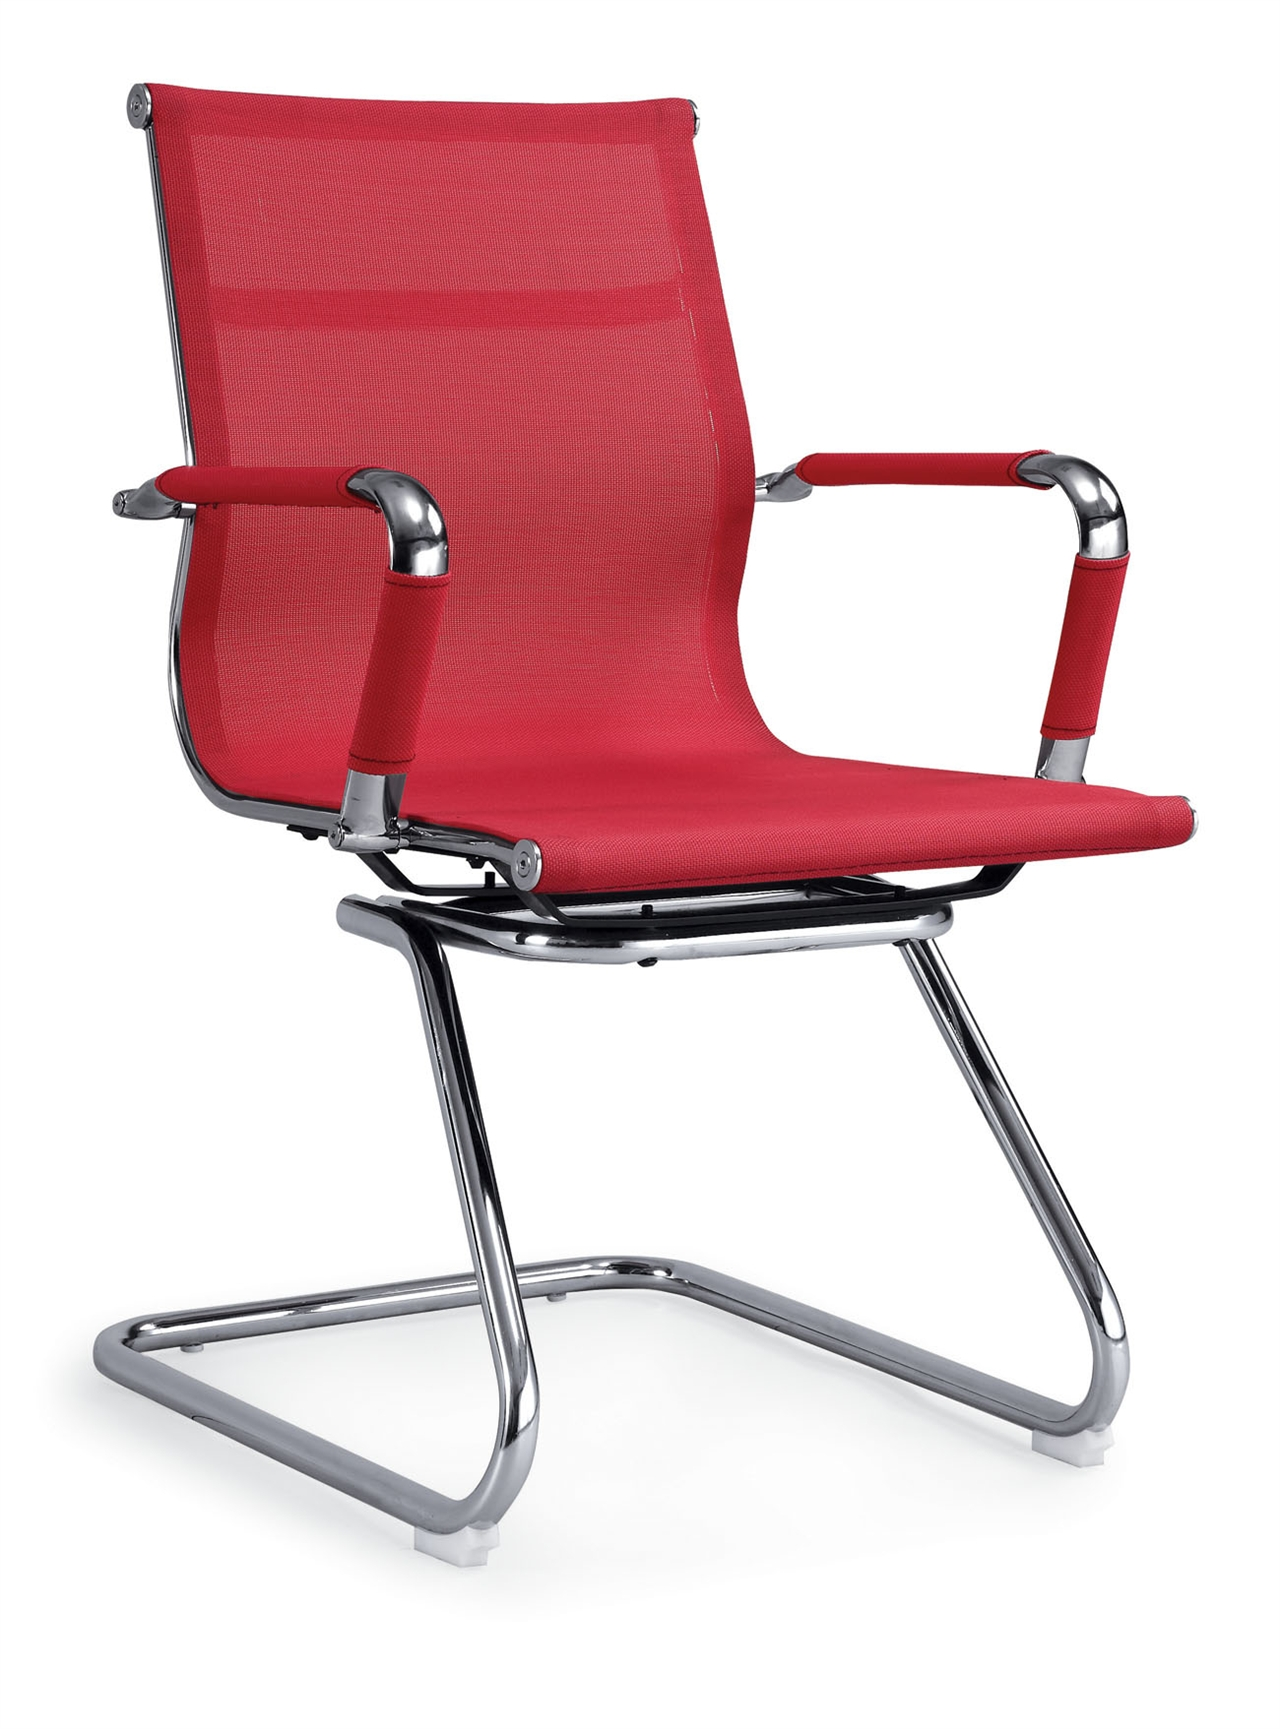 ZHCMOC-02 Cantilever Office Chair With Mesh Surface and Cushion